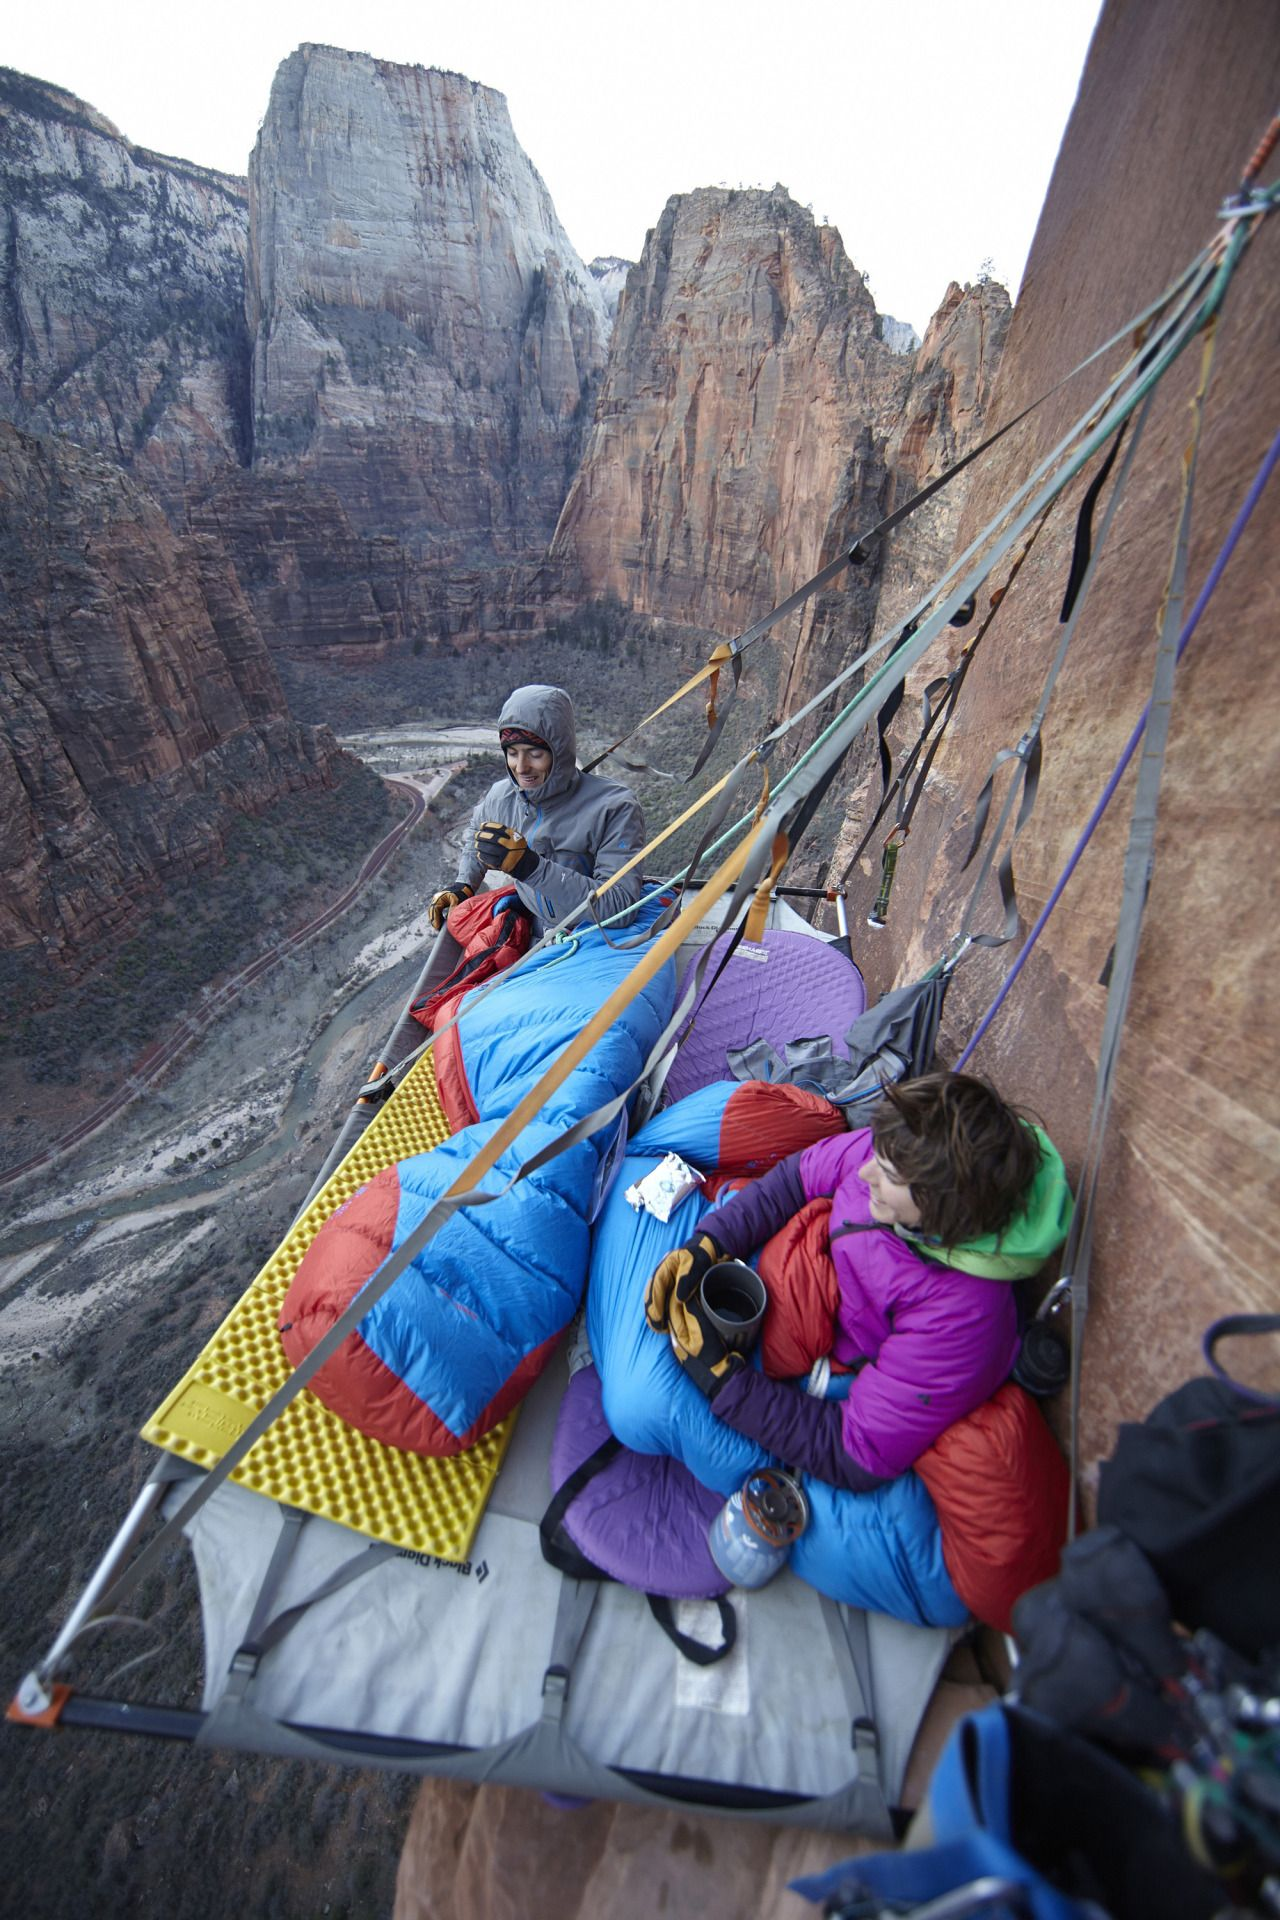 house-under-a-rock:  Katie Lambert & Mason Earle on their big wall adventure - Part 3: Free climbing the 1200-foot sandstone Moonlight Buttress, Zion National Park, Utah photo: Ben Ditto